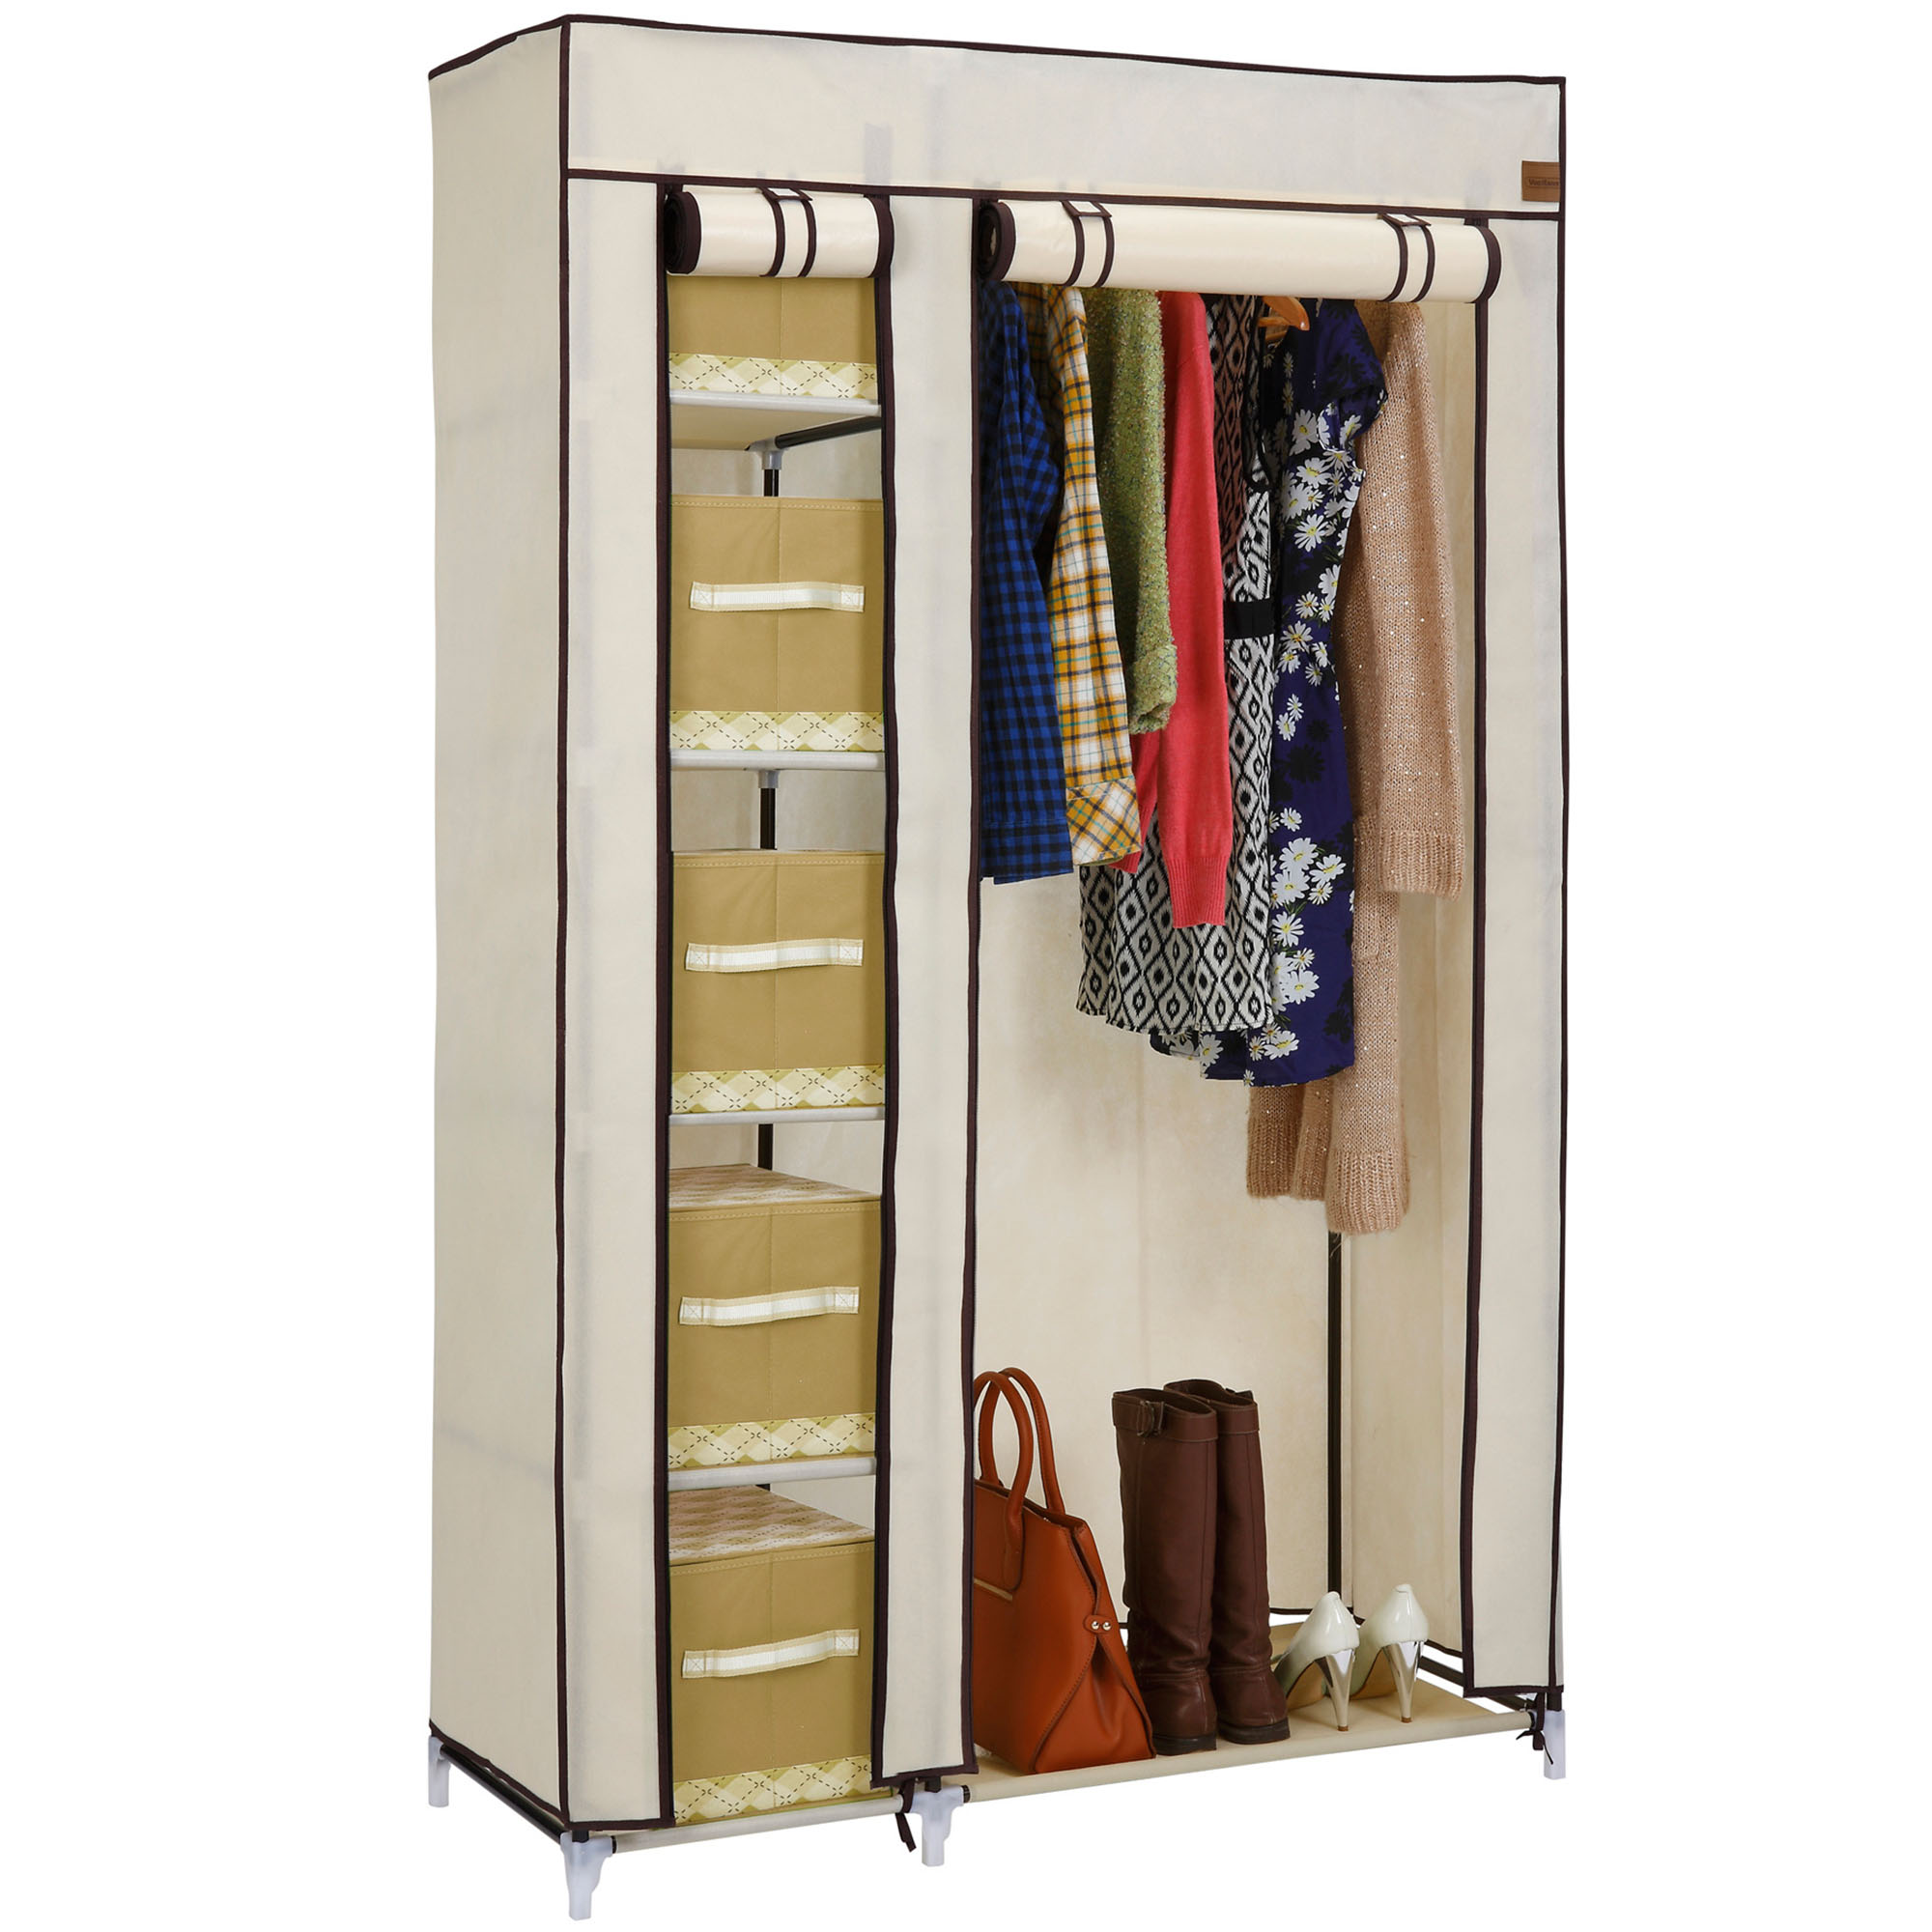 vonhaus double canvas effect wardrobe clothes hanging rail shelves storage beige ebay. Black Bedroom Furniture Sets. Home Design Ideas